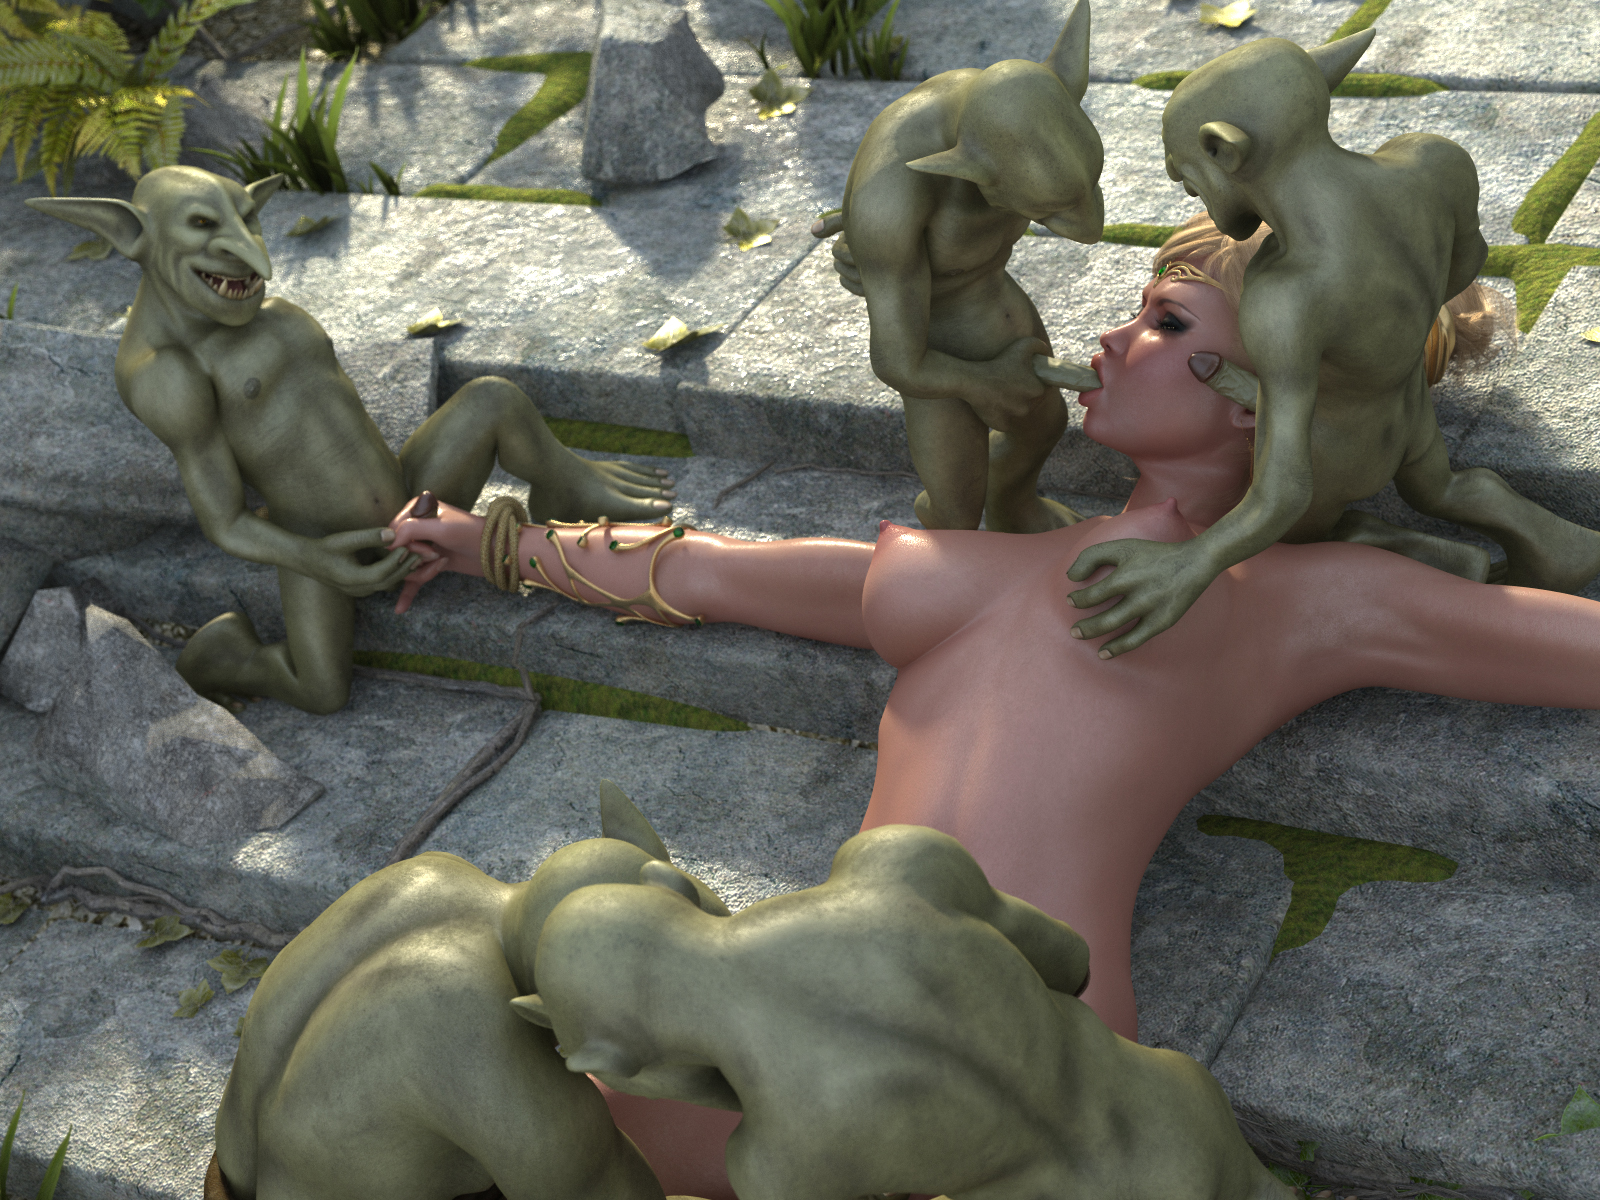 3d porno goblins pictures exposed videos